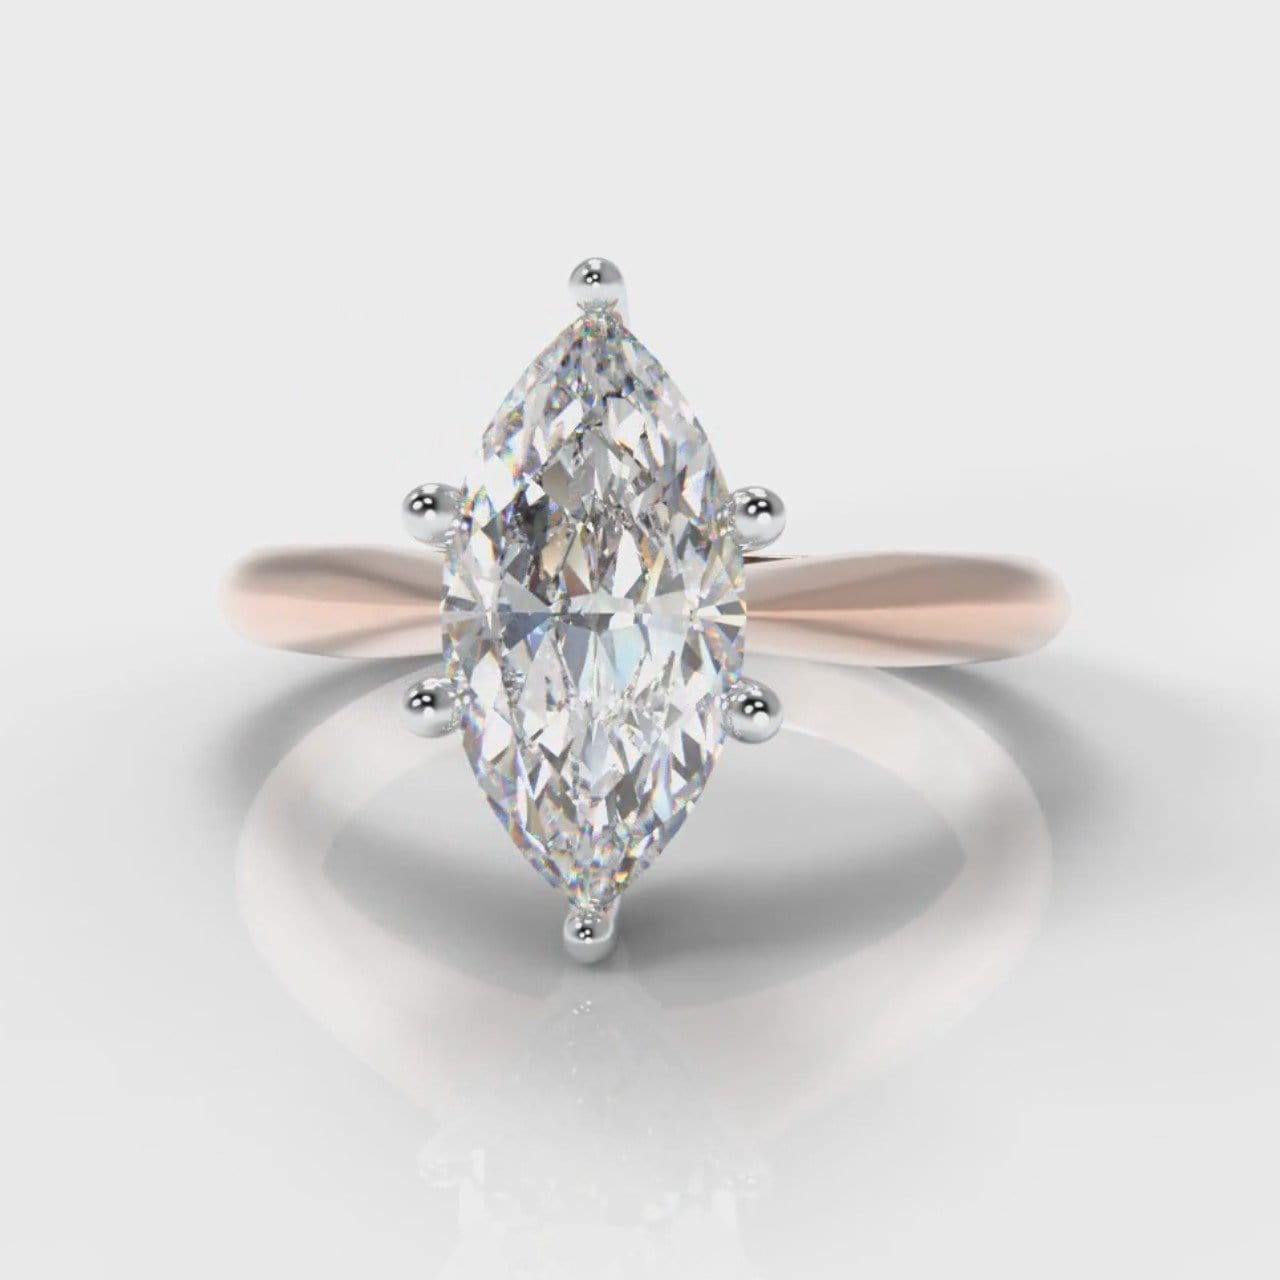 Star Solitaire Marquise Diamond Engagement Ring - Rose Gold